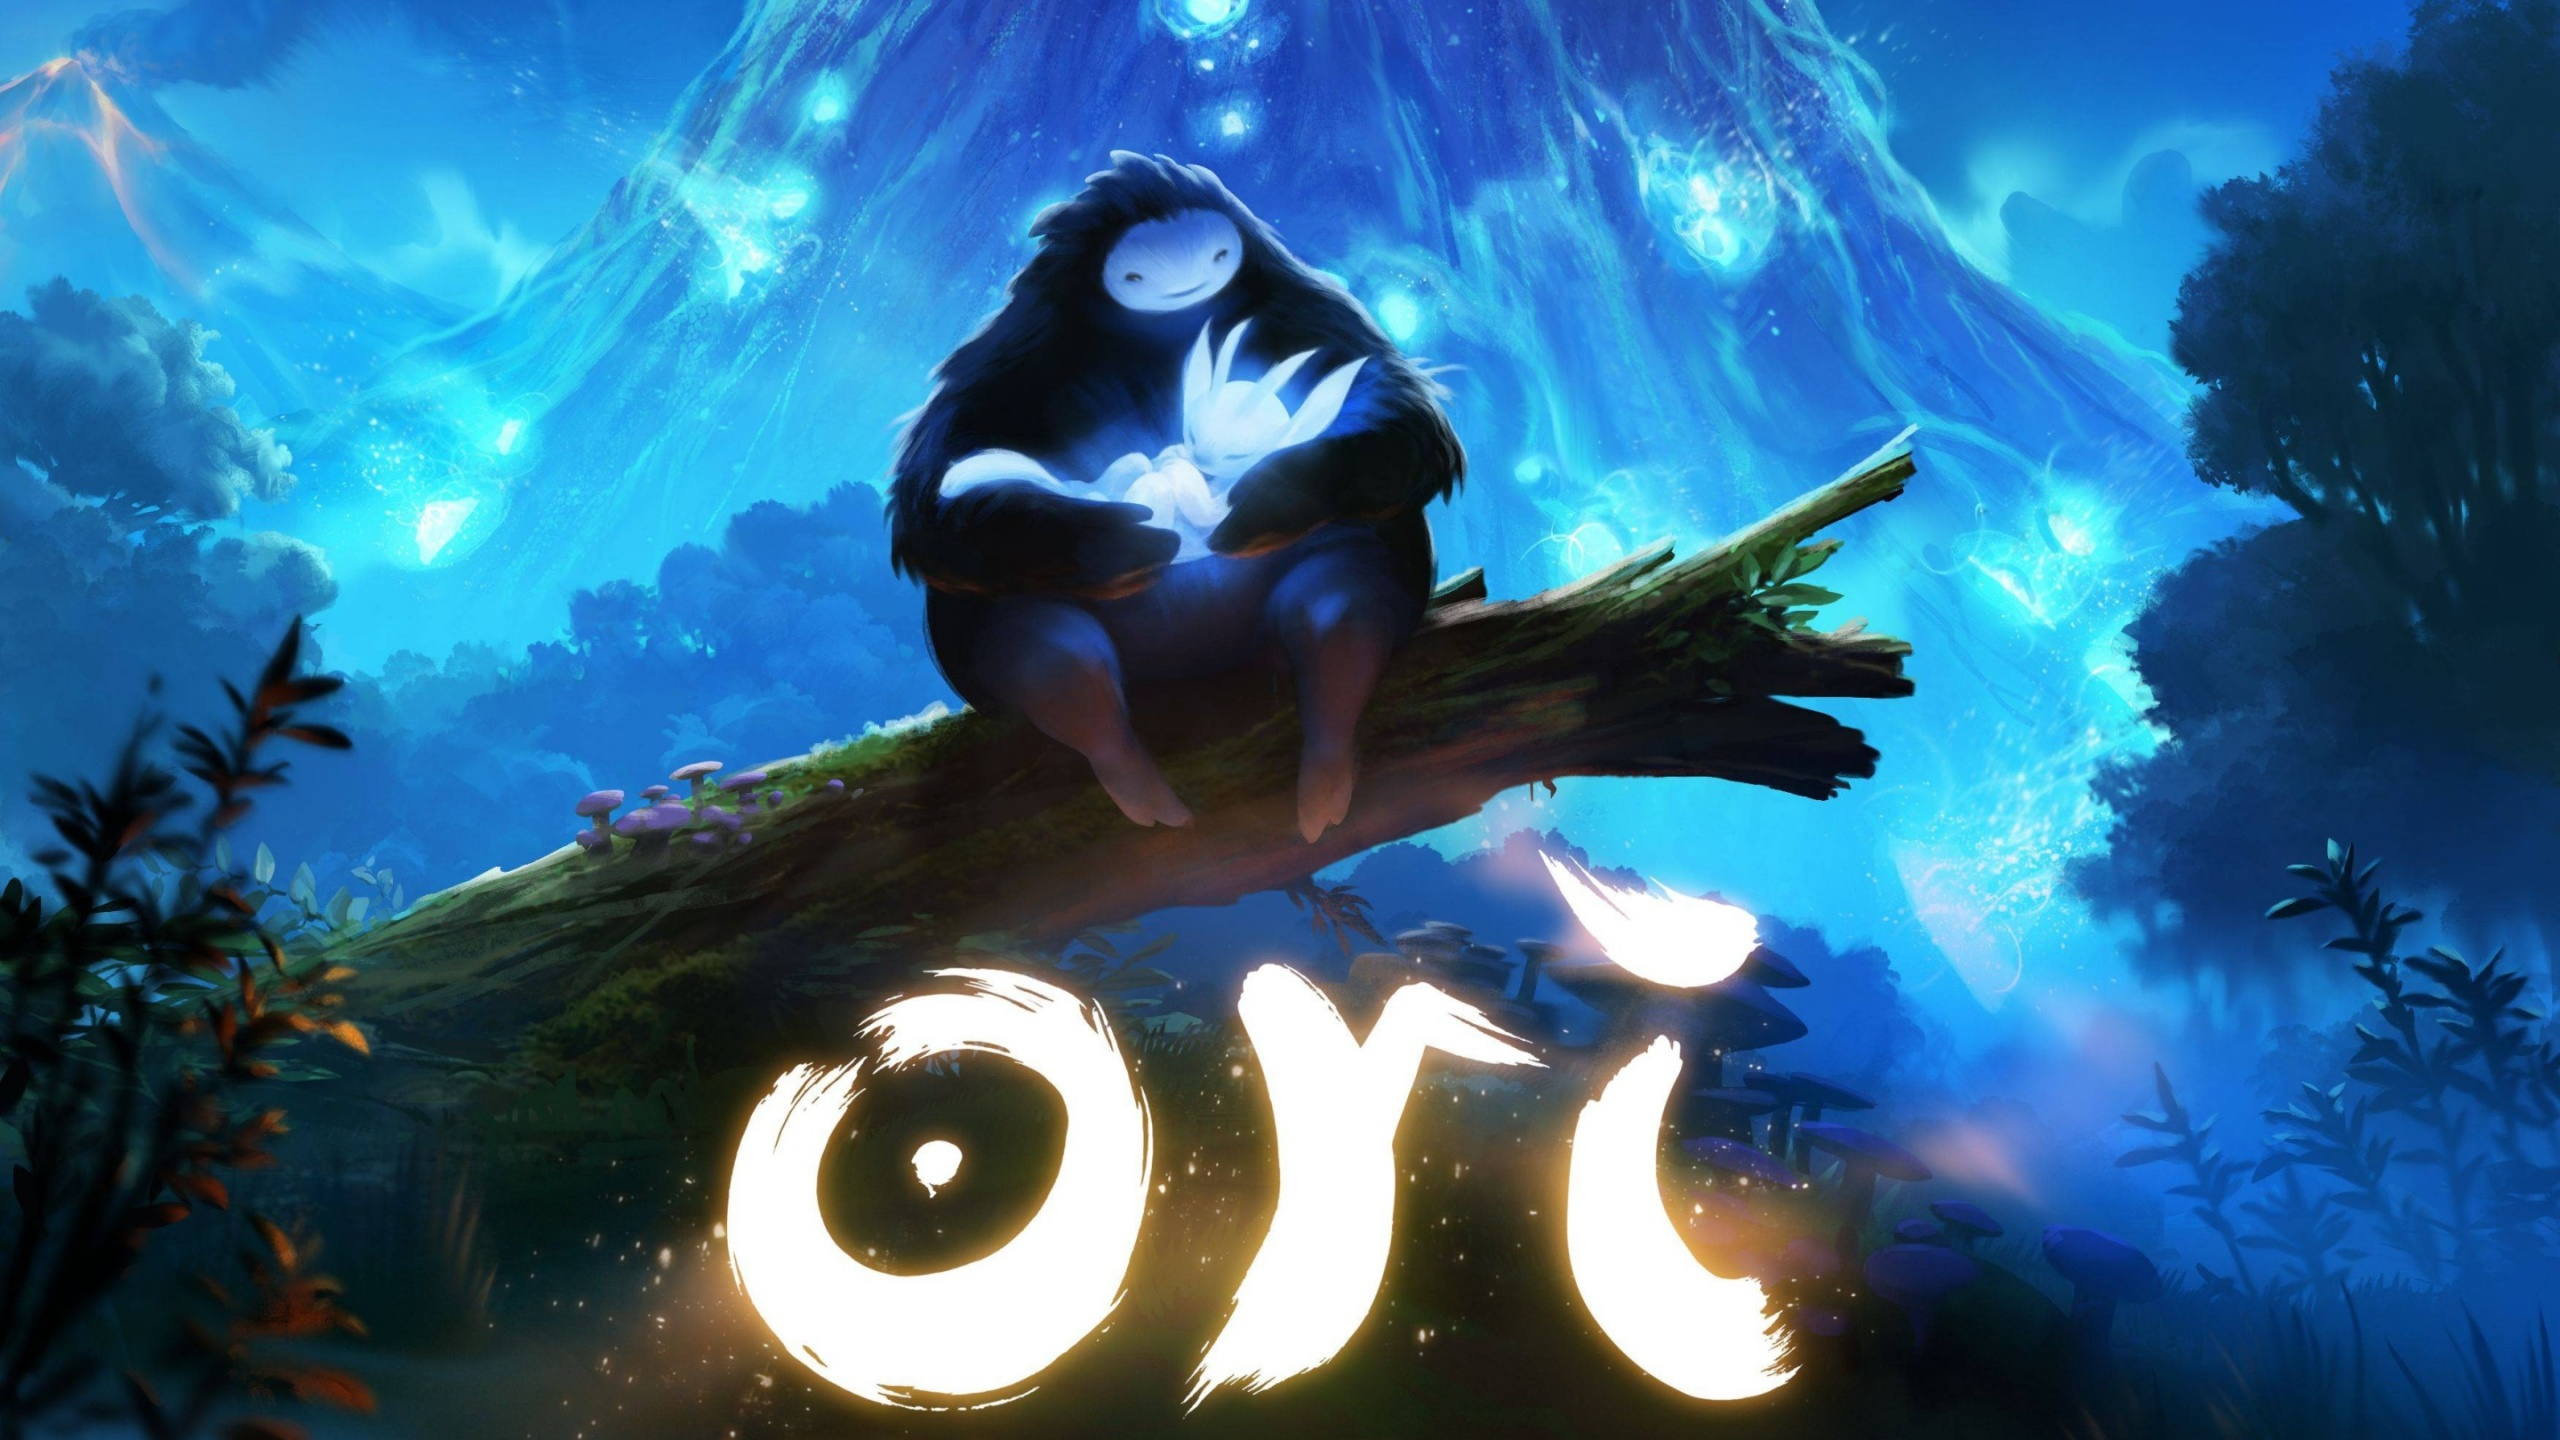 ori and the blind forest 2015 wallpapers - 2560x1440 - 782982